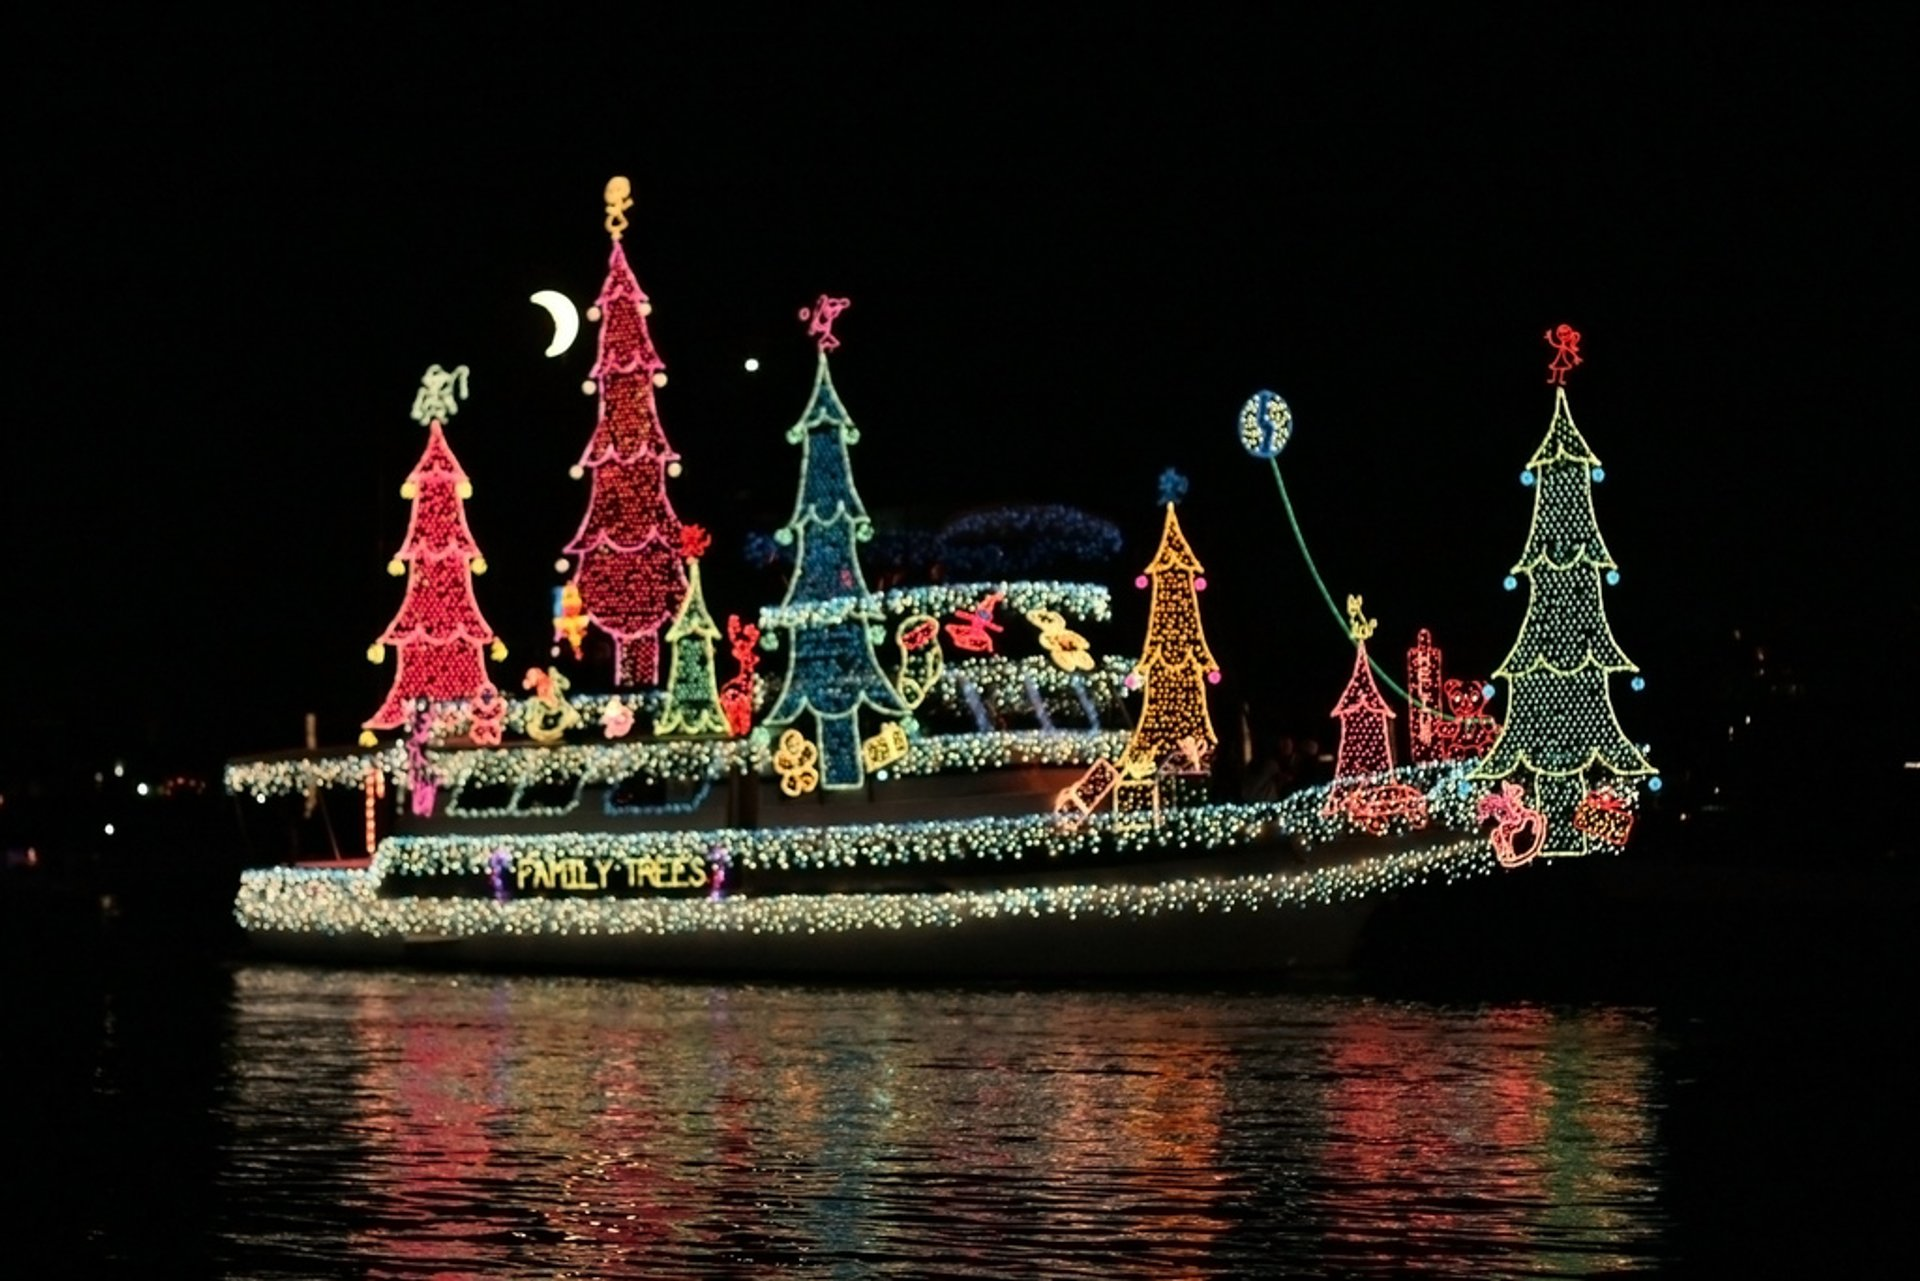 Newport Beach Boat Parade of Christmas Lights 2020